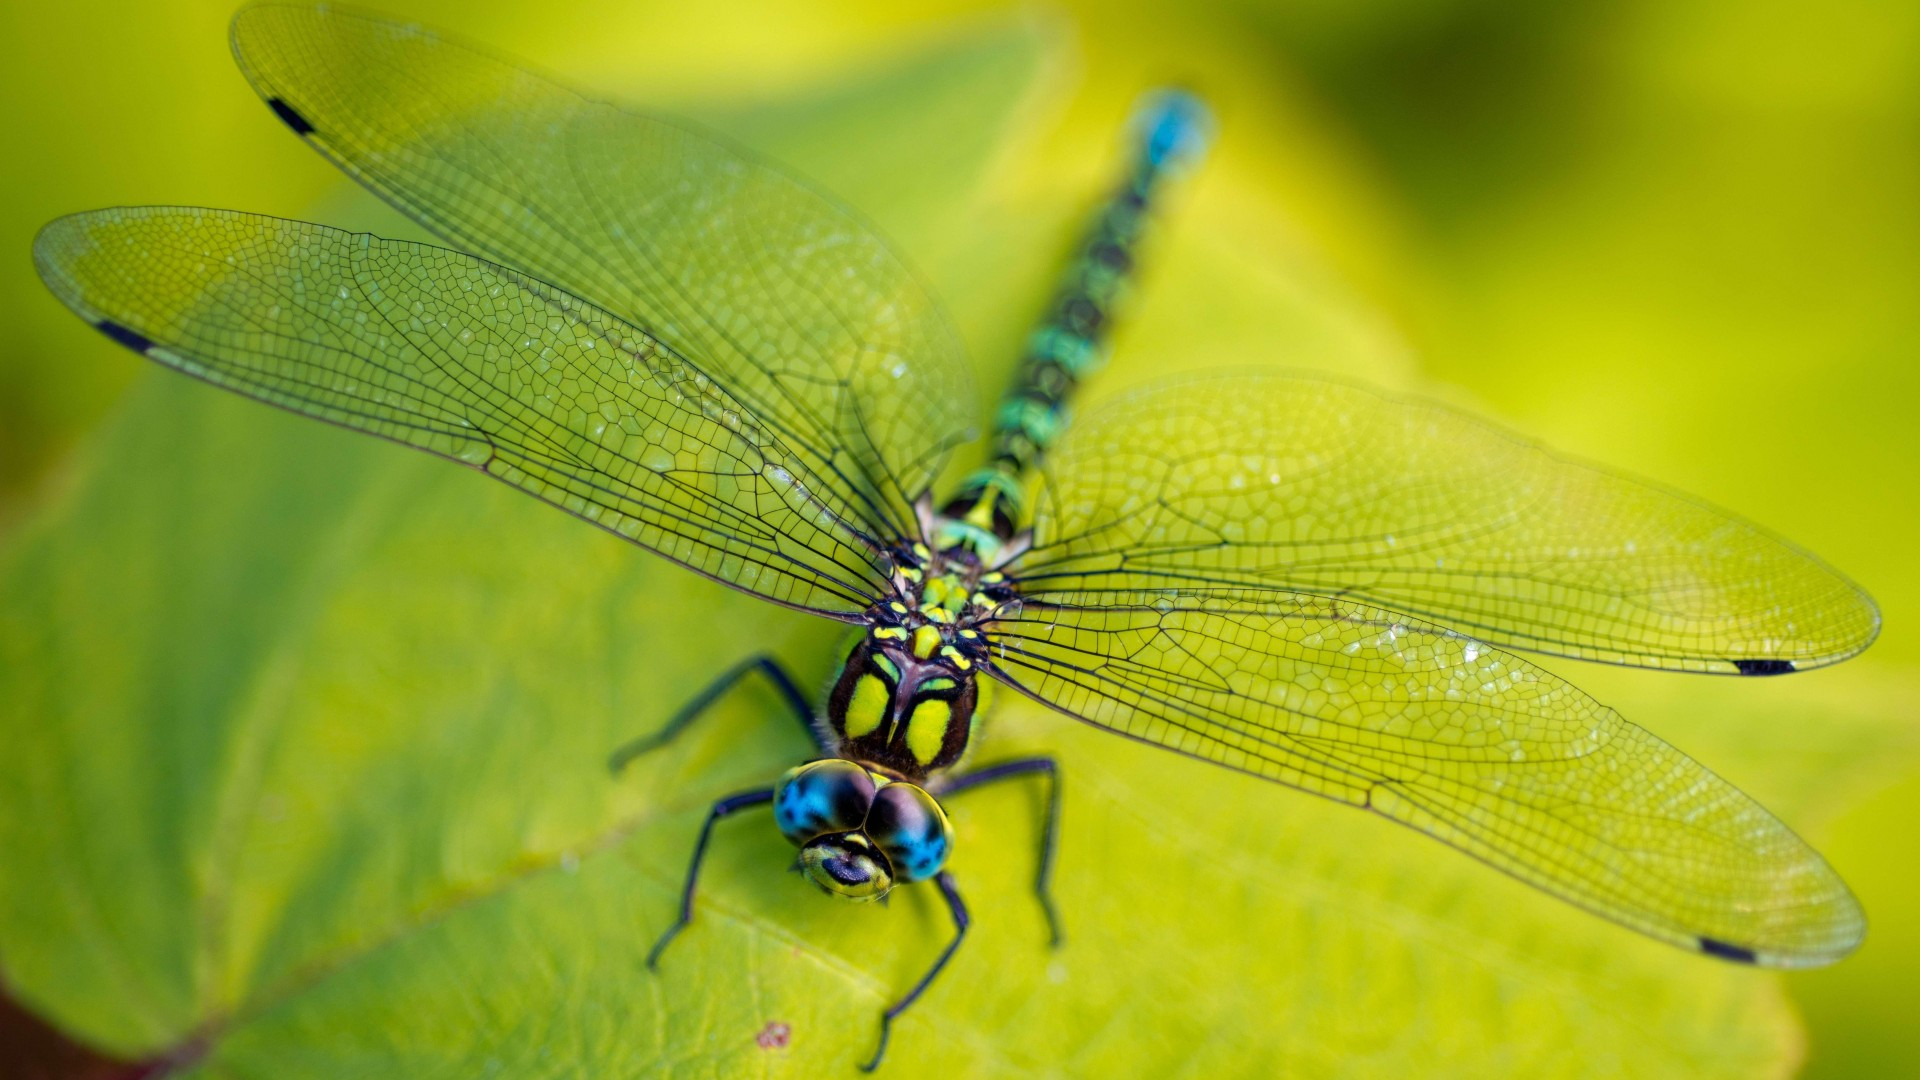 Dragonfly, leaves, wings, green, insect, macro, nature (horizontal)